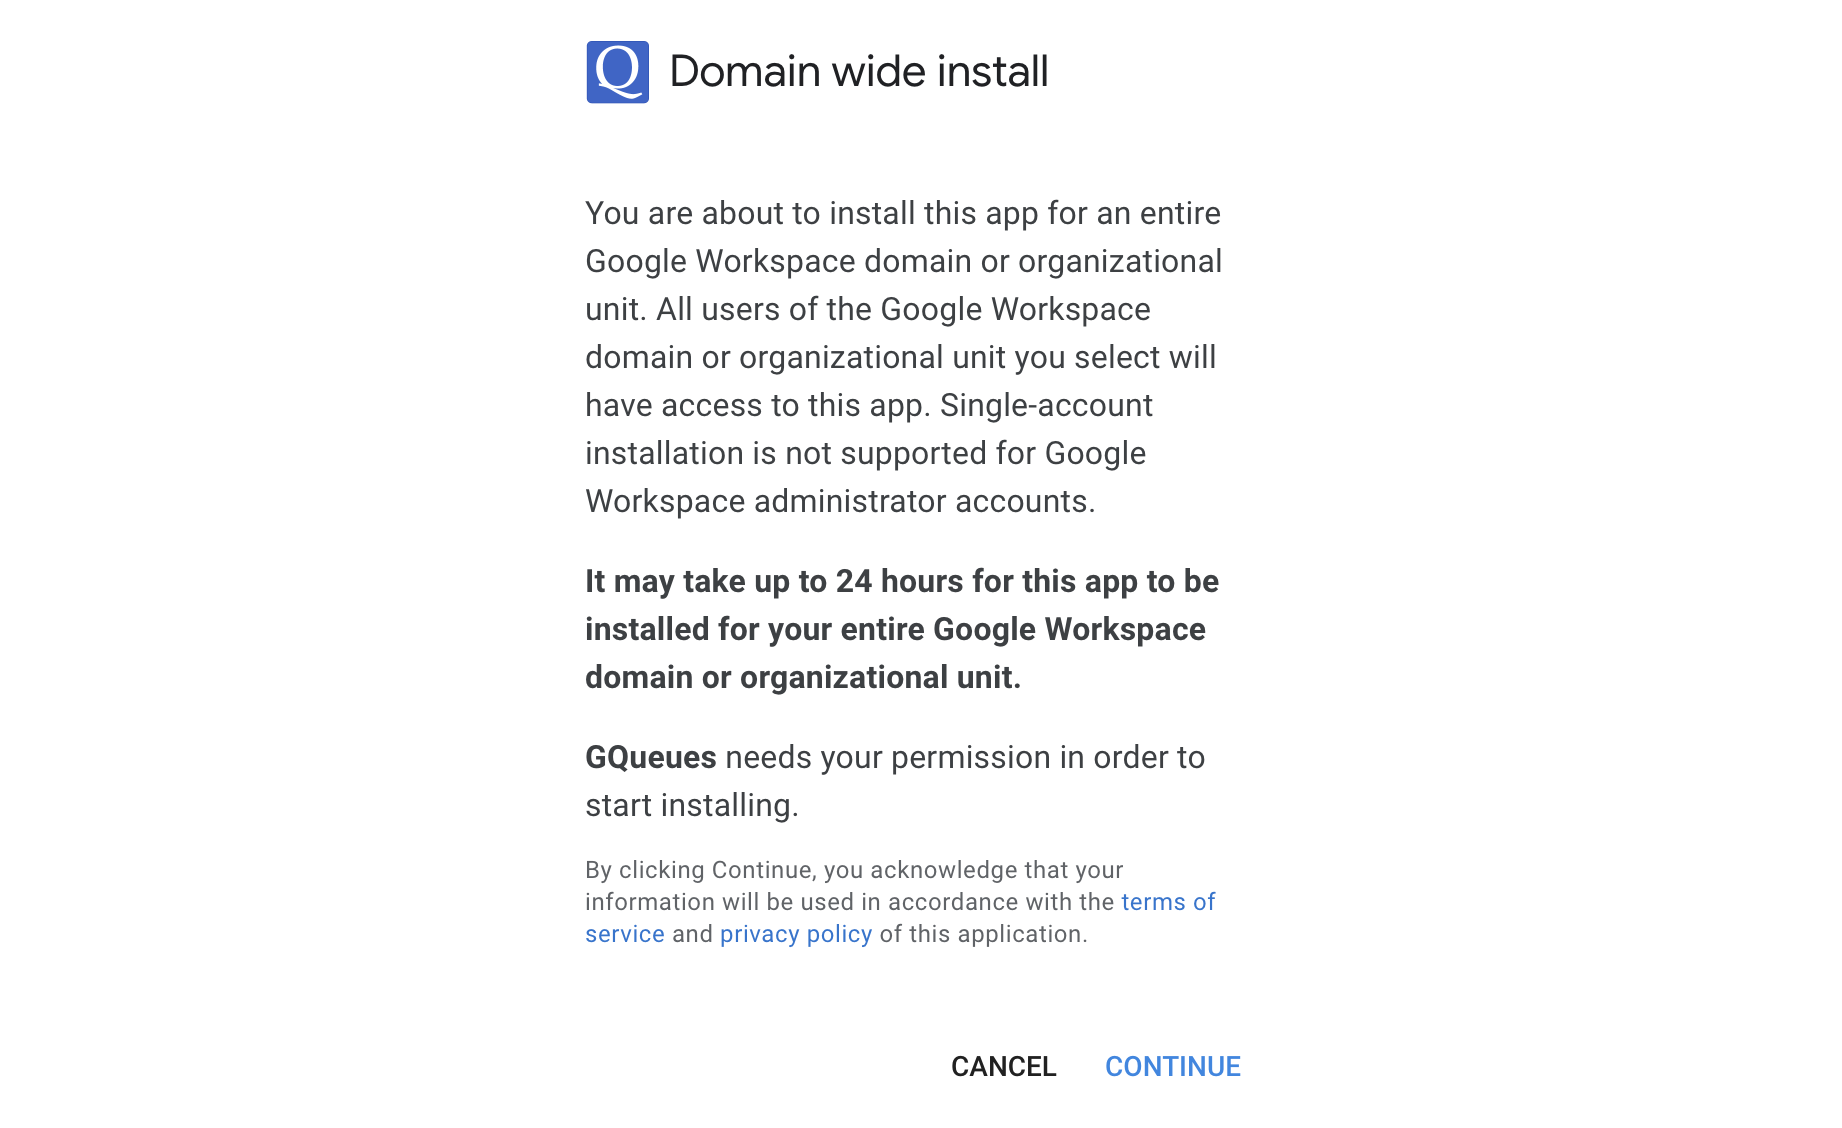 Click continue to allow domain wide install